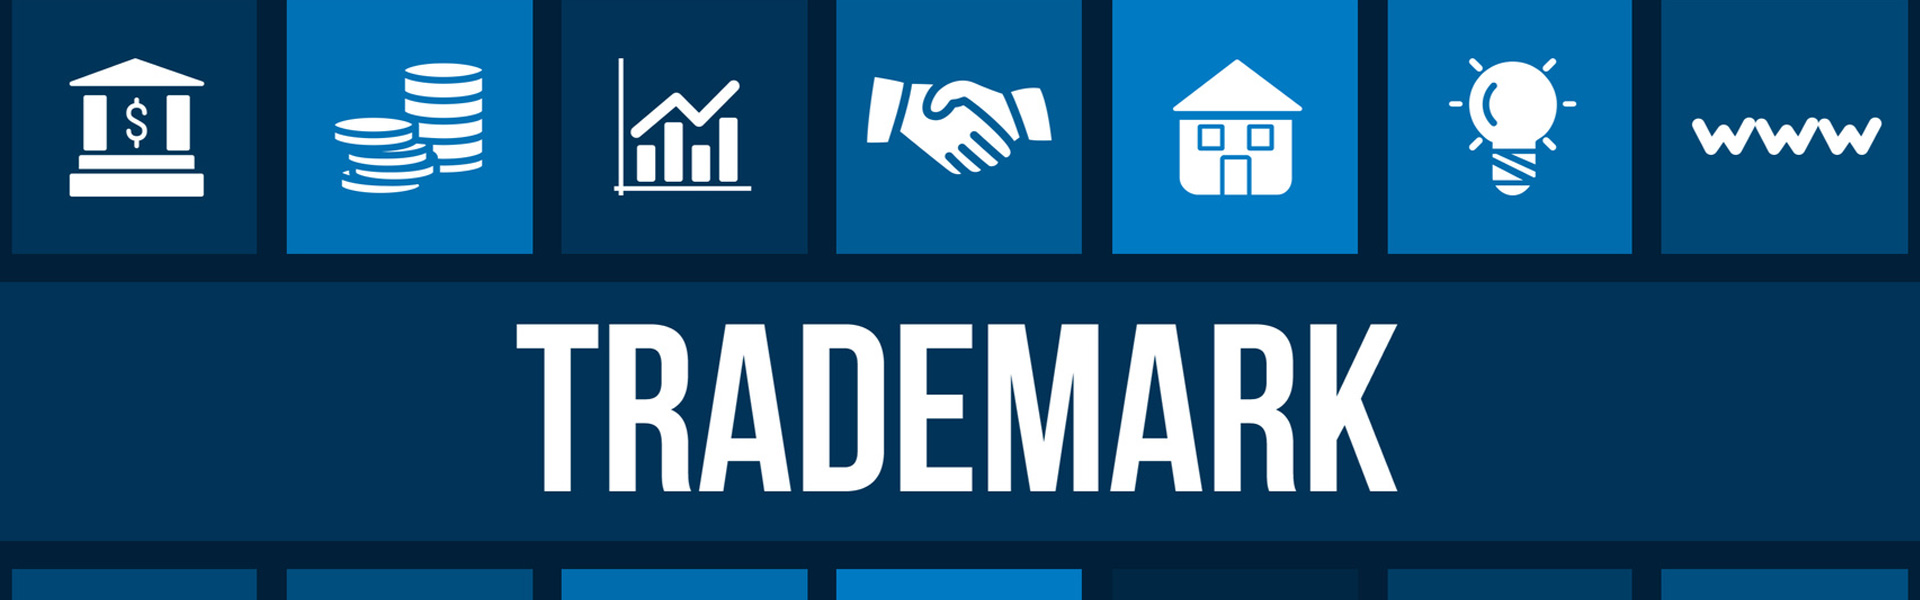 Types of Trademark Application in India